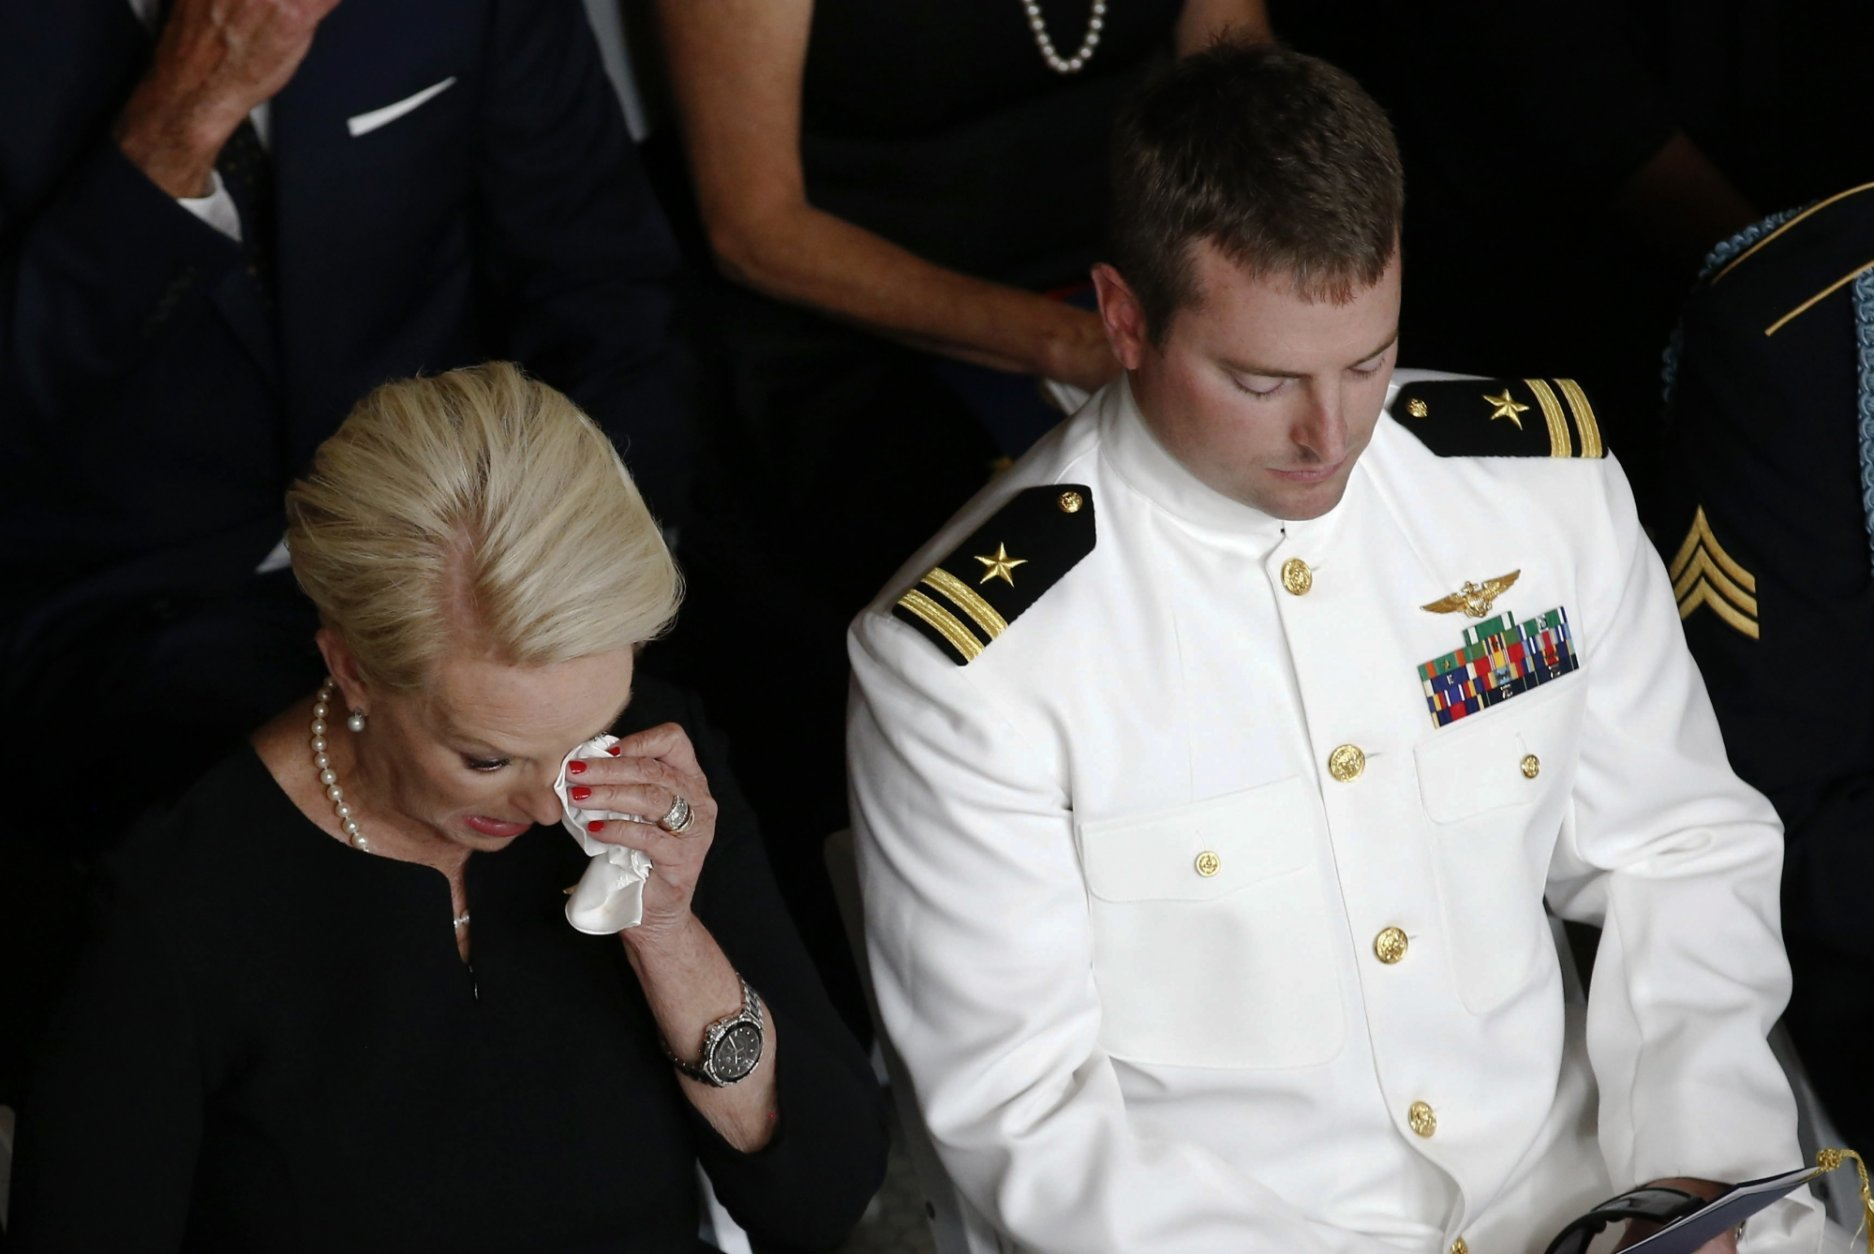 Cindy McCain, wife of Sen. John McCain, R-Ariz., wipes a tear away next to her son Jack during a memorial service at the Arizona Capitol on Wednesday, Aug. 29, 2018, in Phoenix. (AP Photo/Ross D. Franklin, Pool)